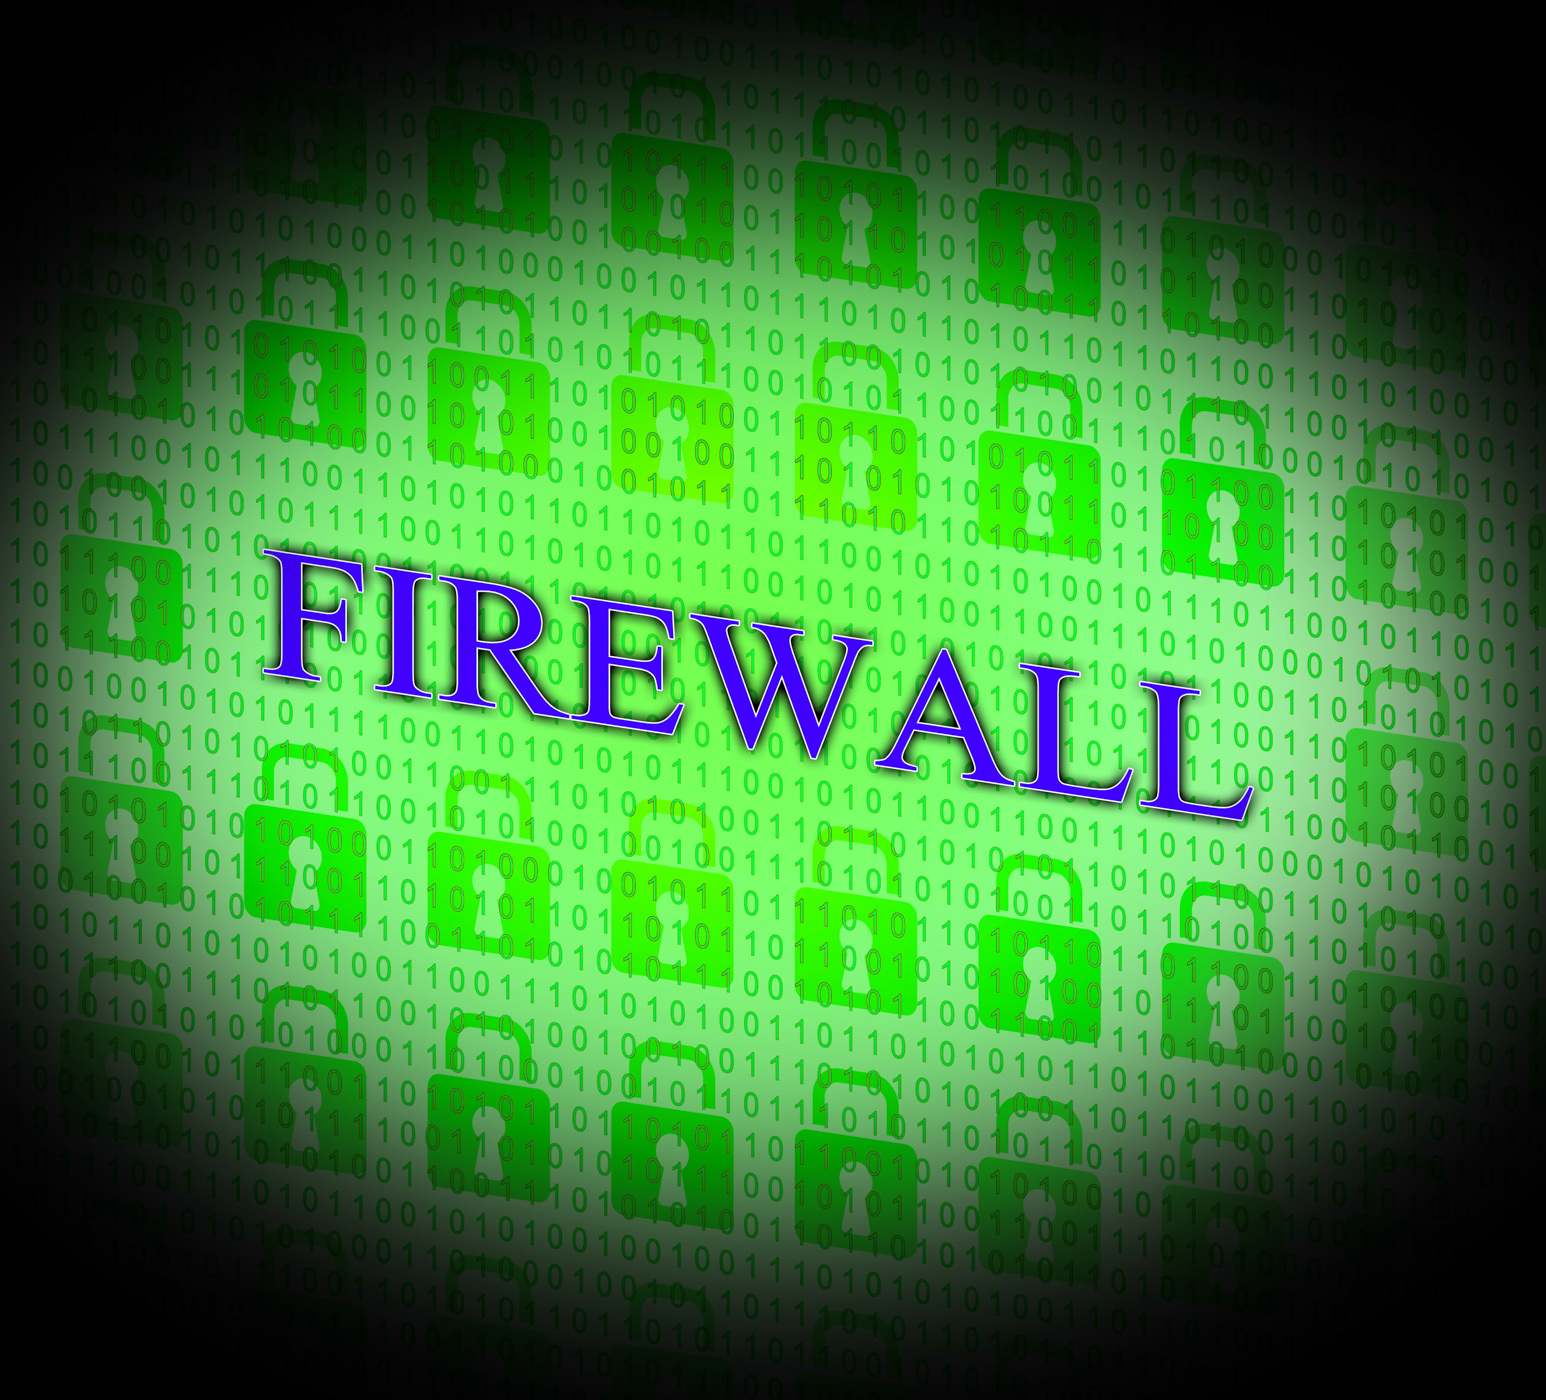 Firewall security means no access and encrypt photo